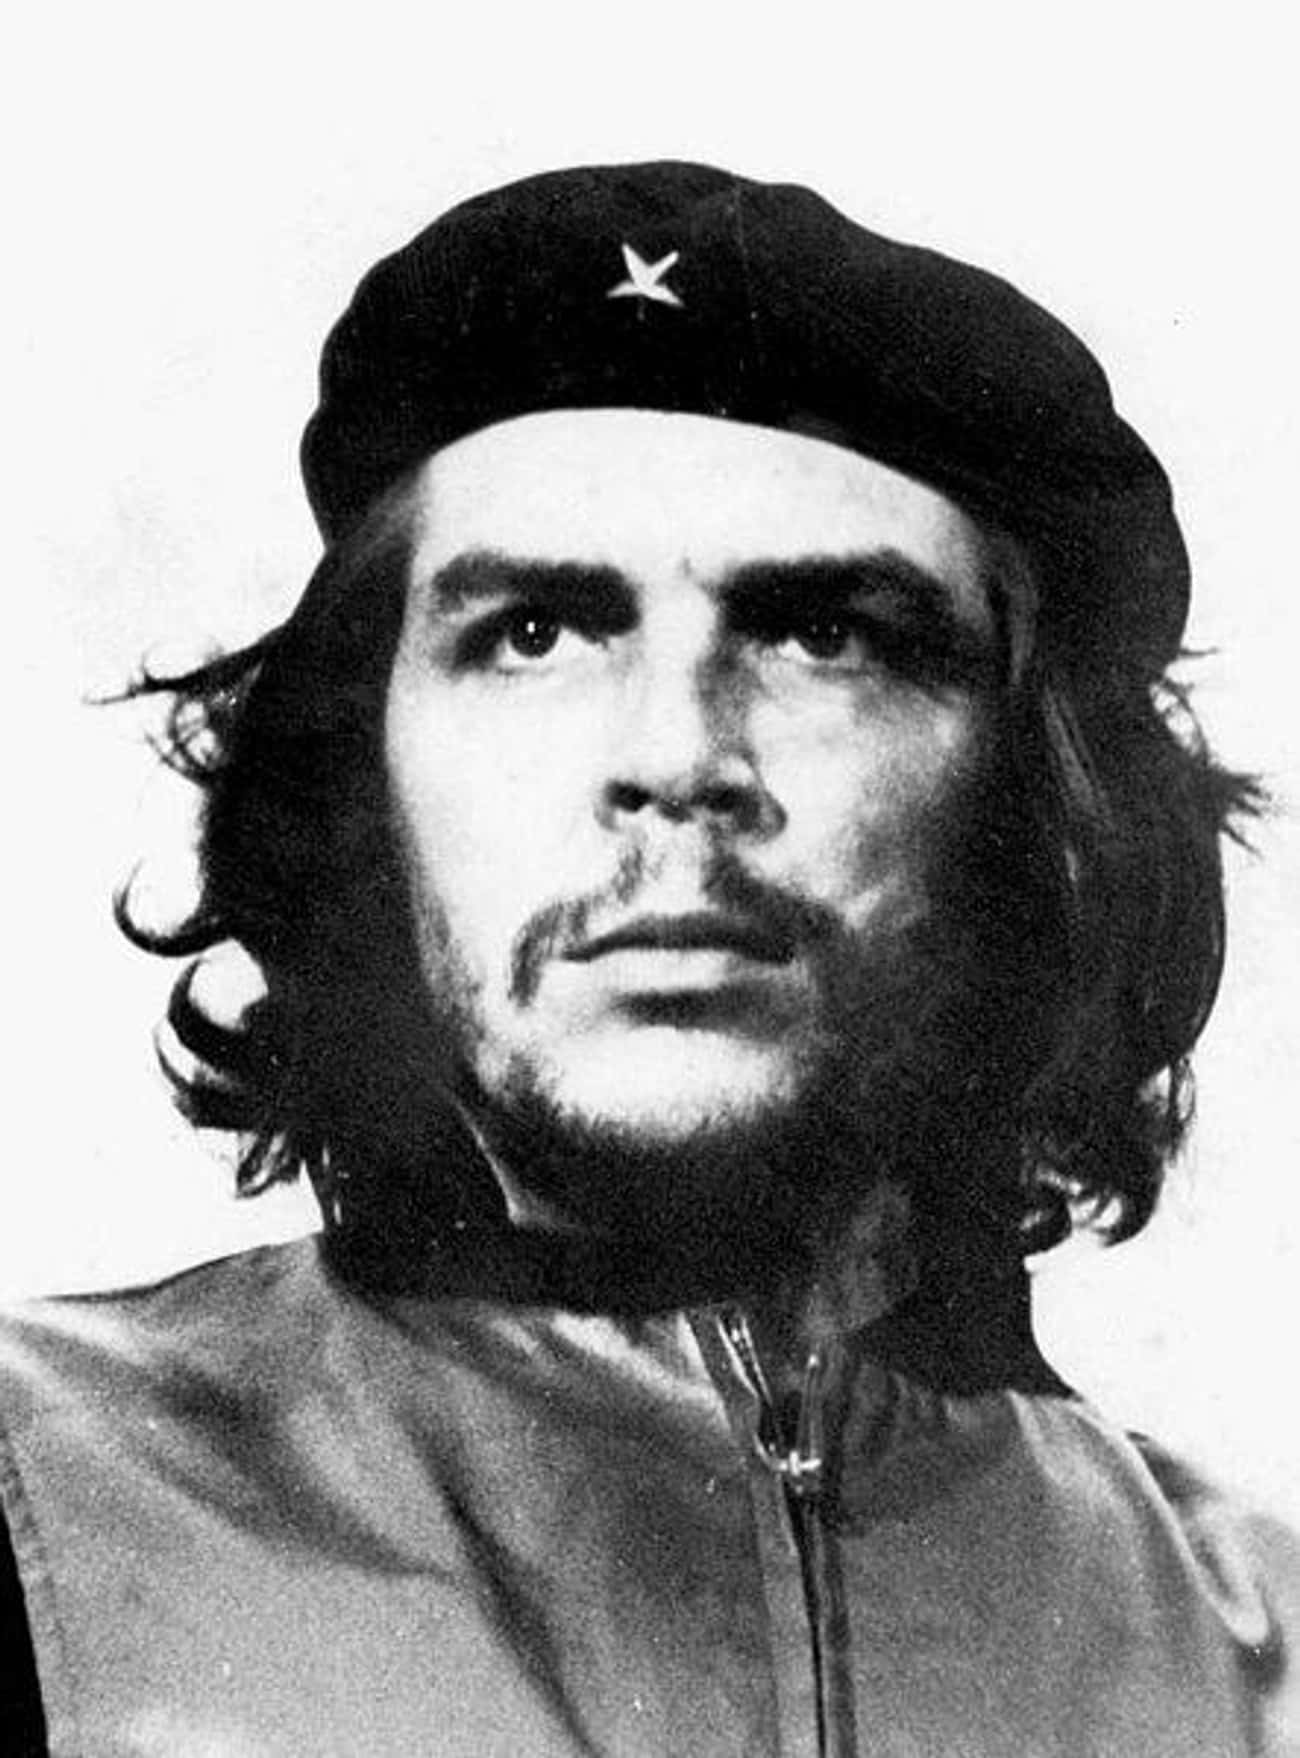 Che Guevara is listed (or ranked) 2 on the list Famous People Born in 1928